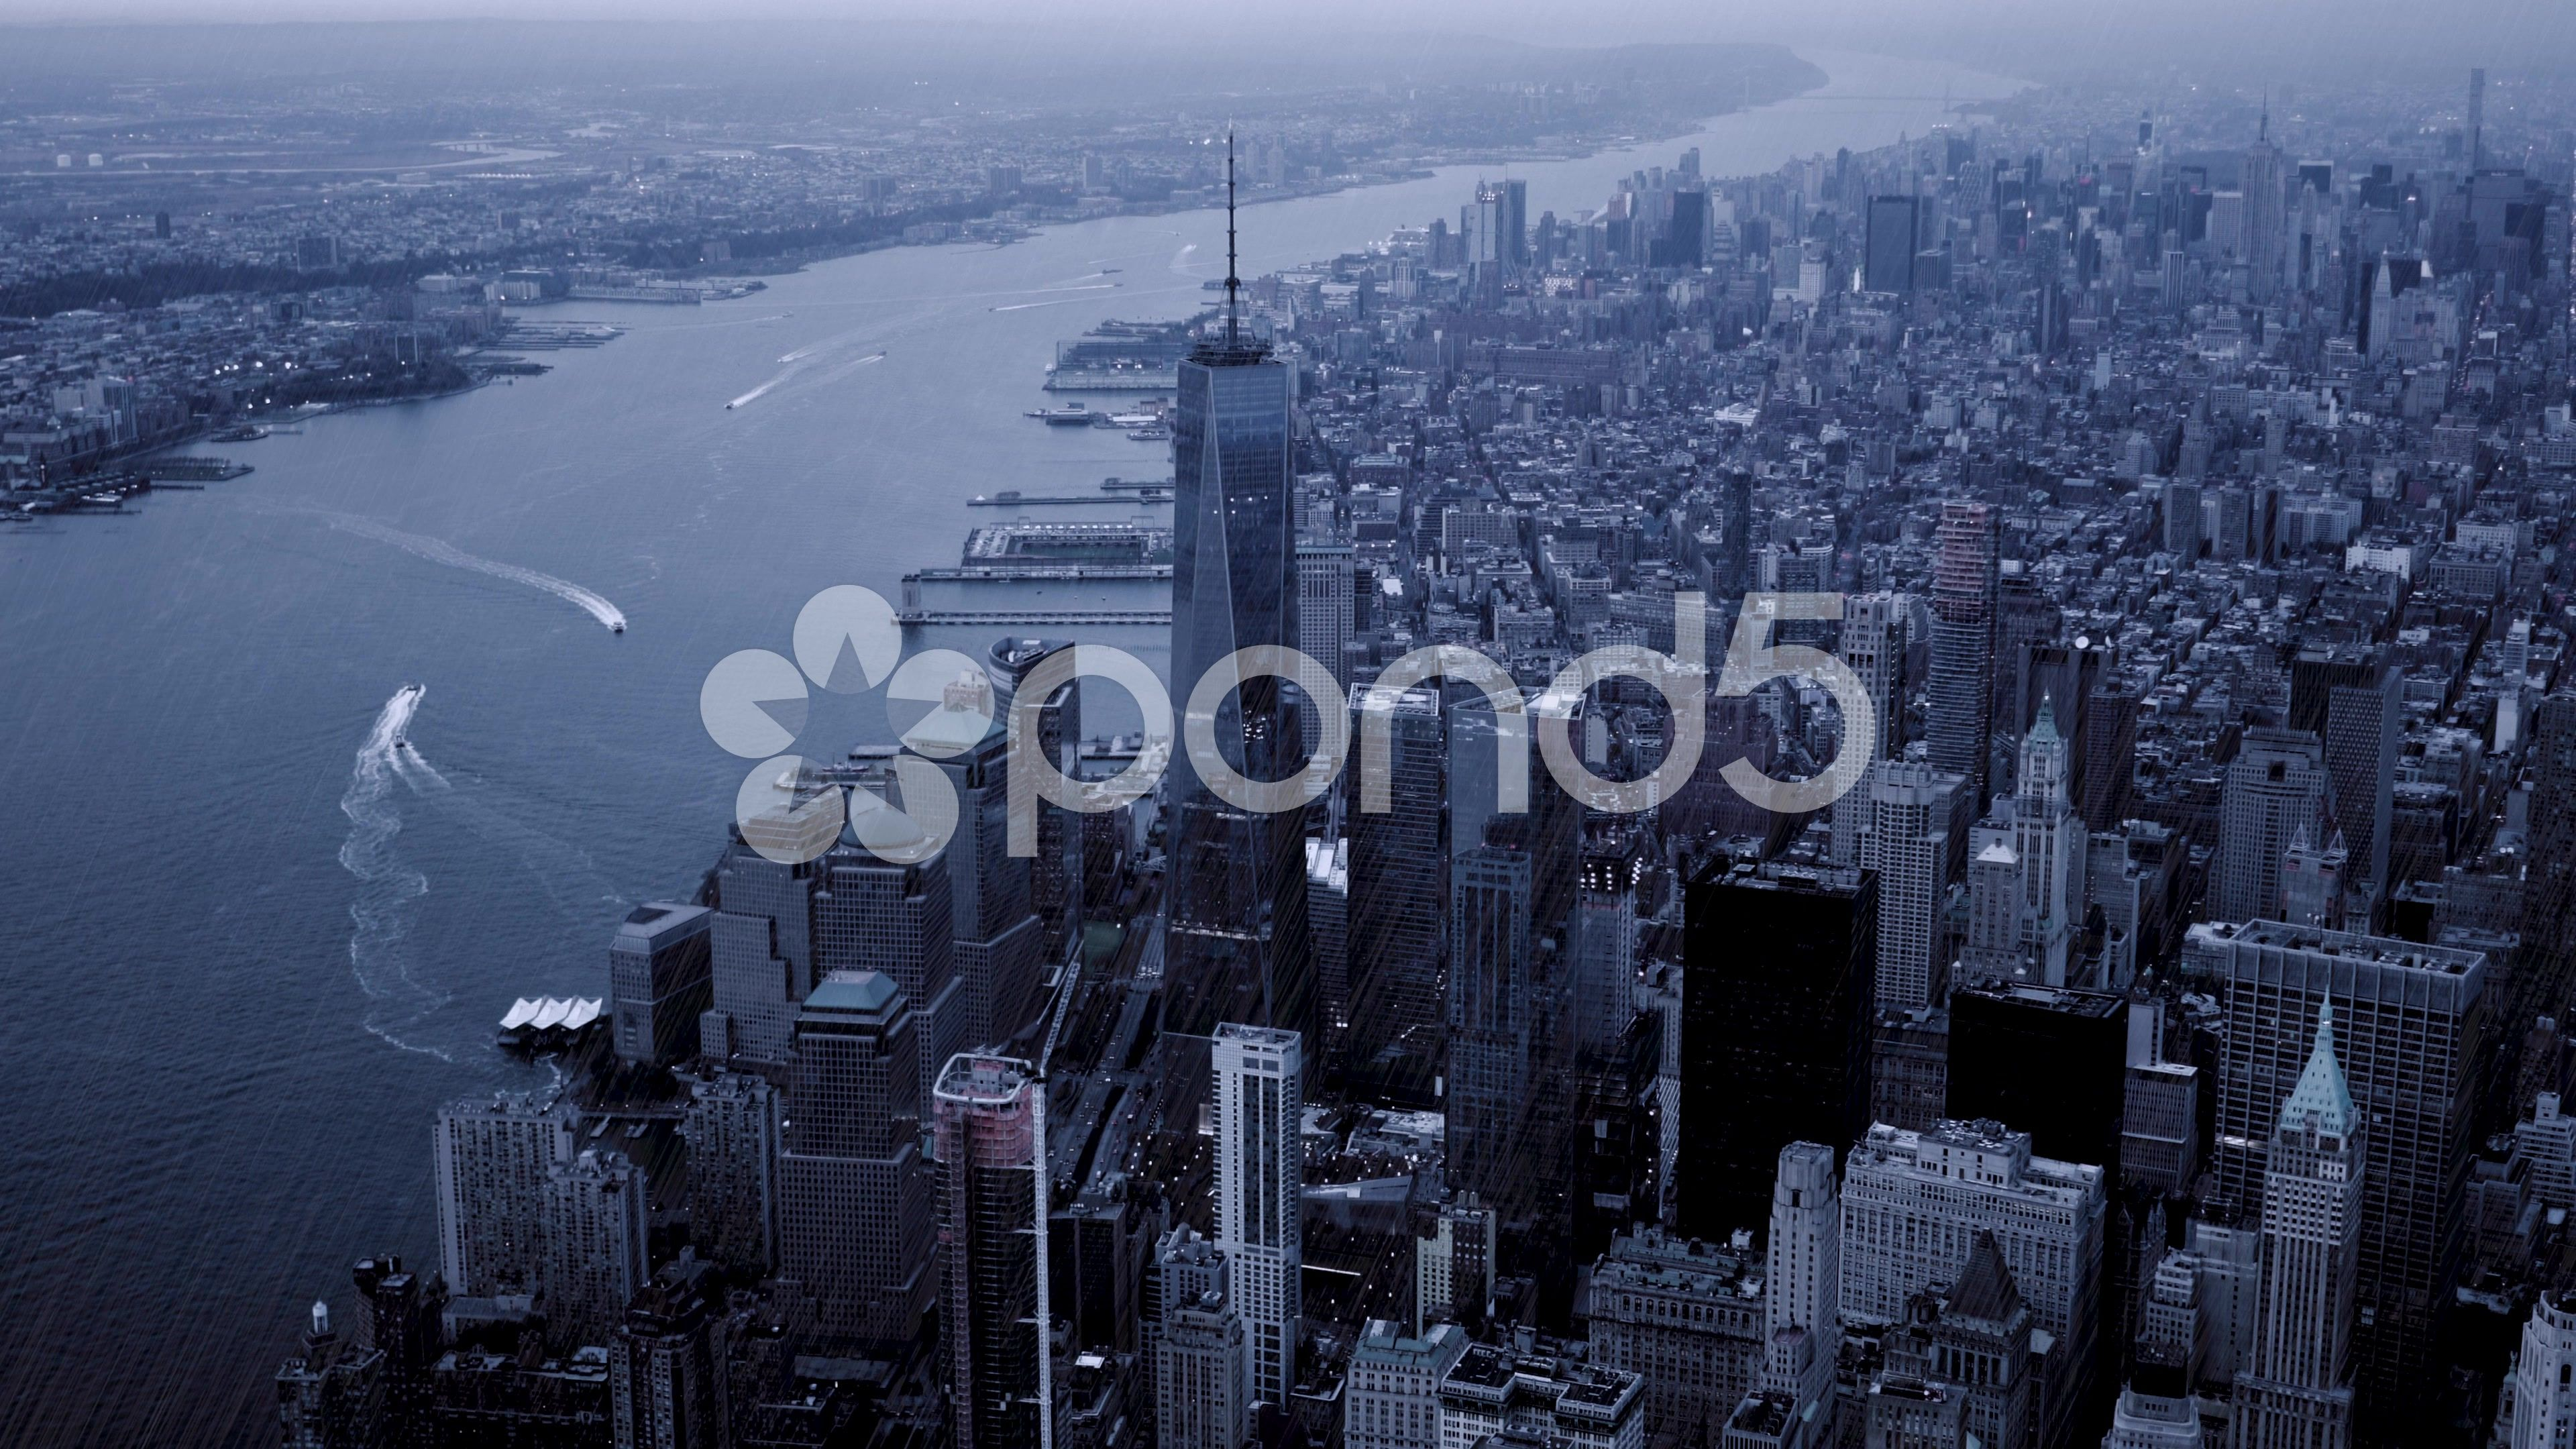 Raining Day In New York City Weather Season Change Background Stock Footage City Weather York Raining New York City City New York City Weather